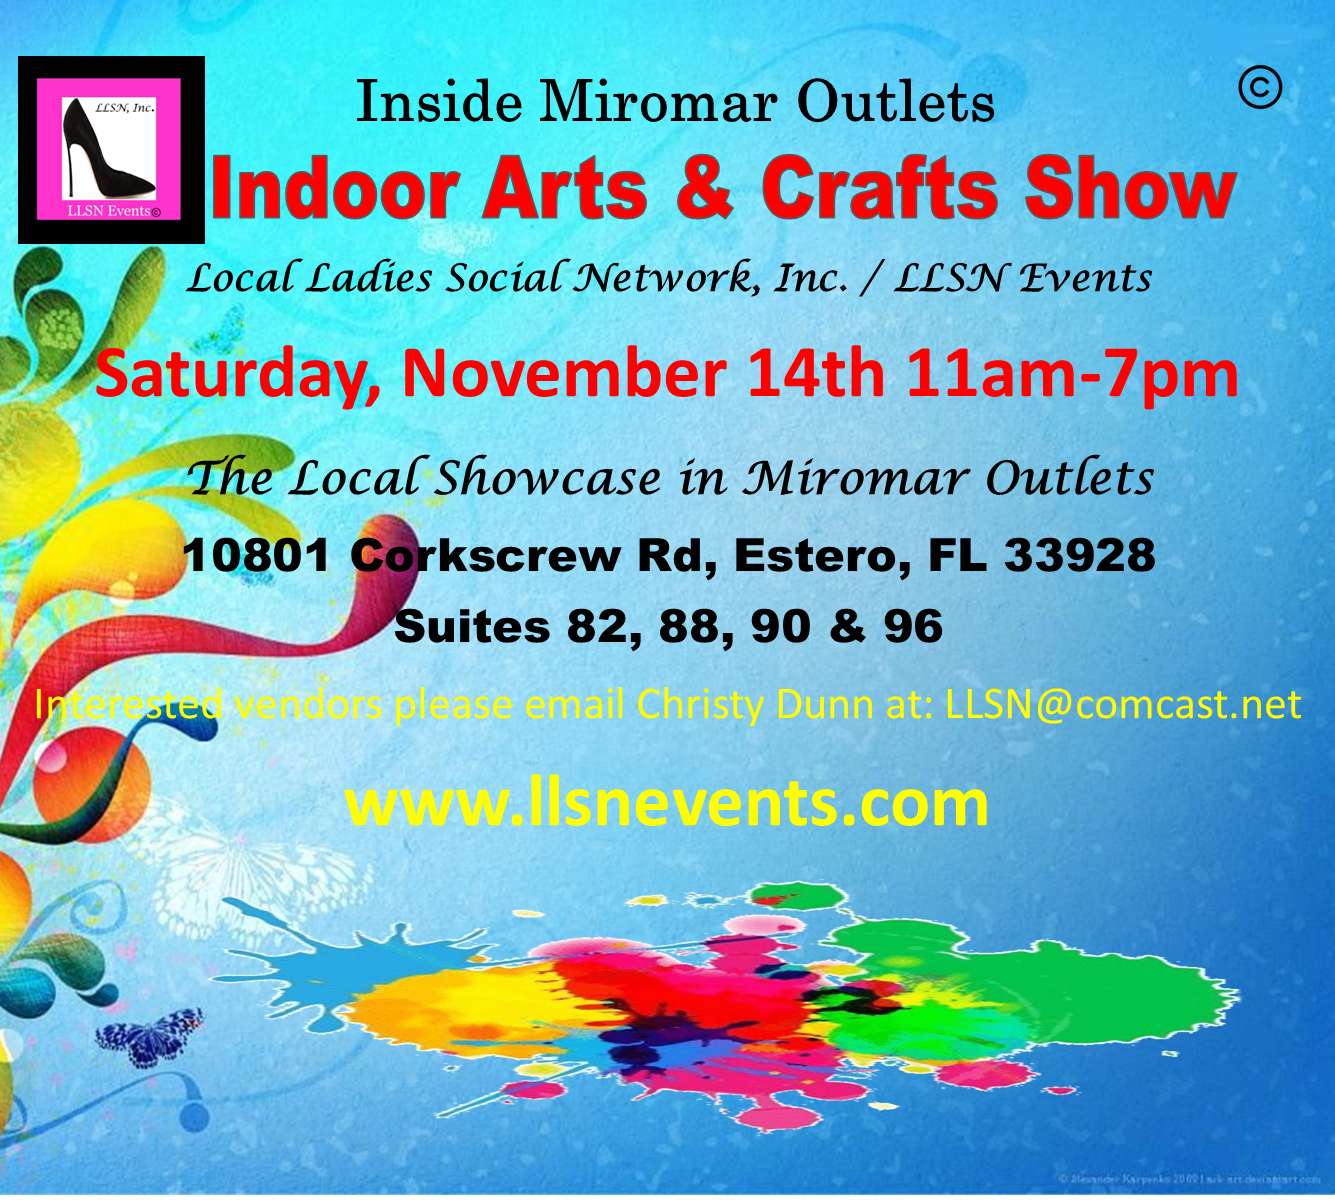 Indoor Arts & Crafts Show- Saturday, November 14th 11am-7pm.